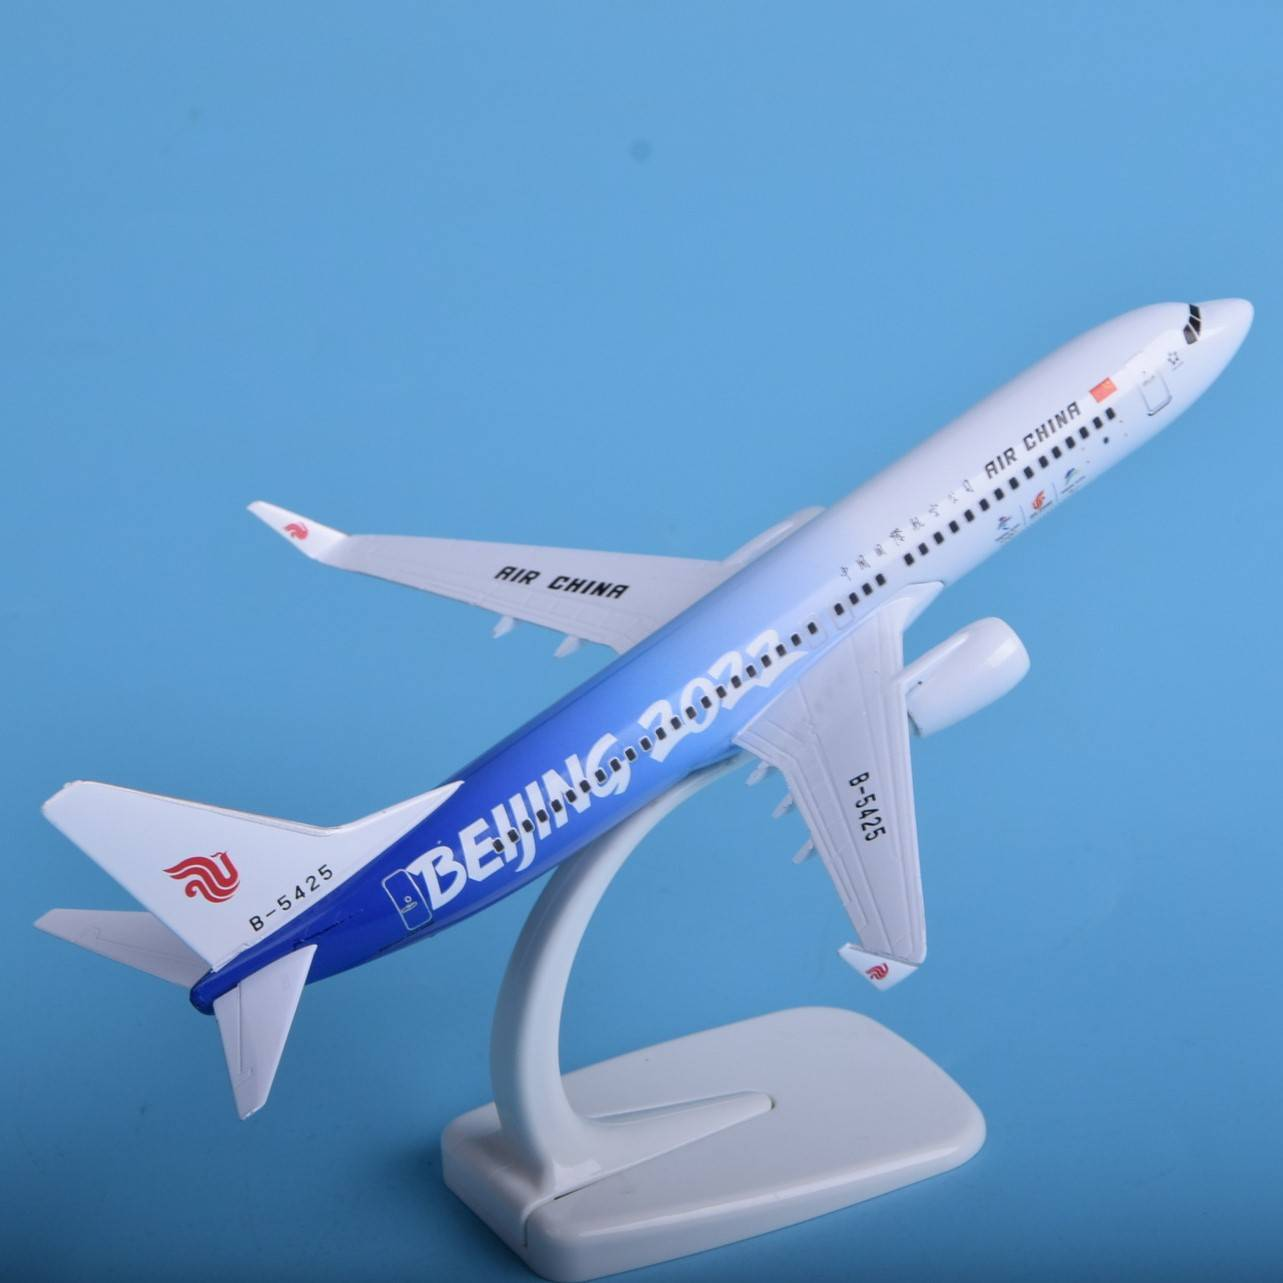 TN-0052 Promotional BOEING 737 Airplane Model